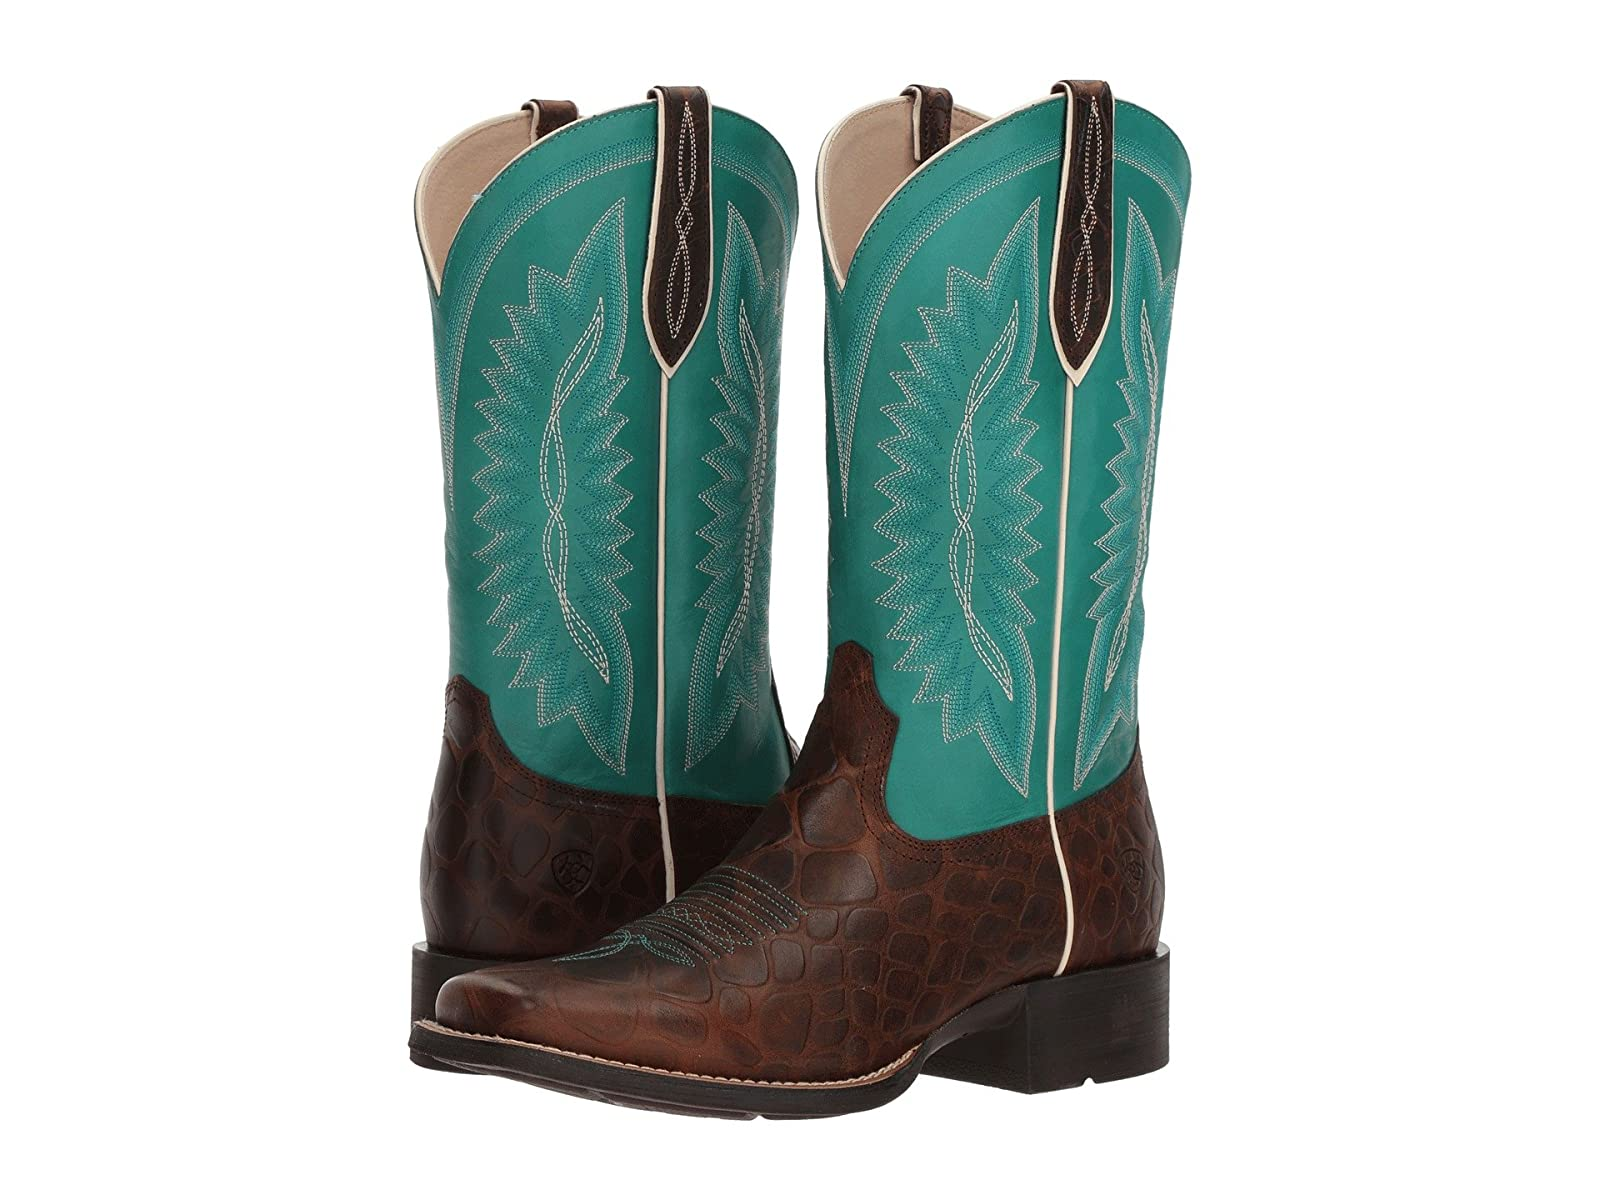 Ariat Quickdraw LegacySelling fashionable and eye-catching shoes